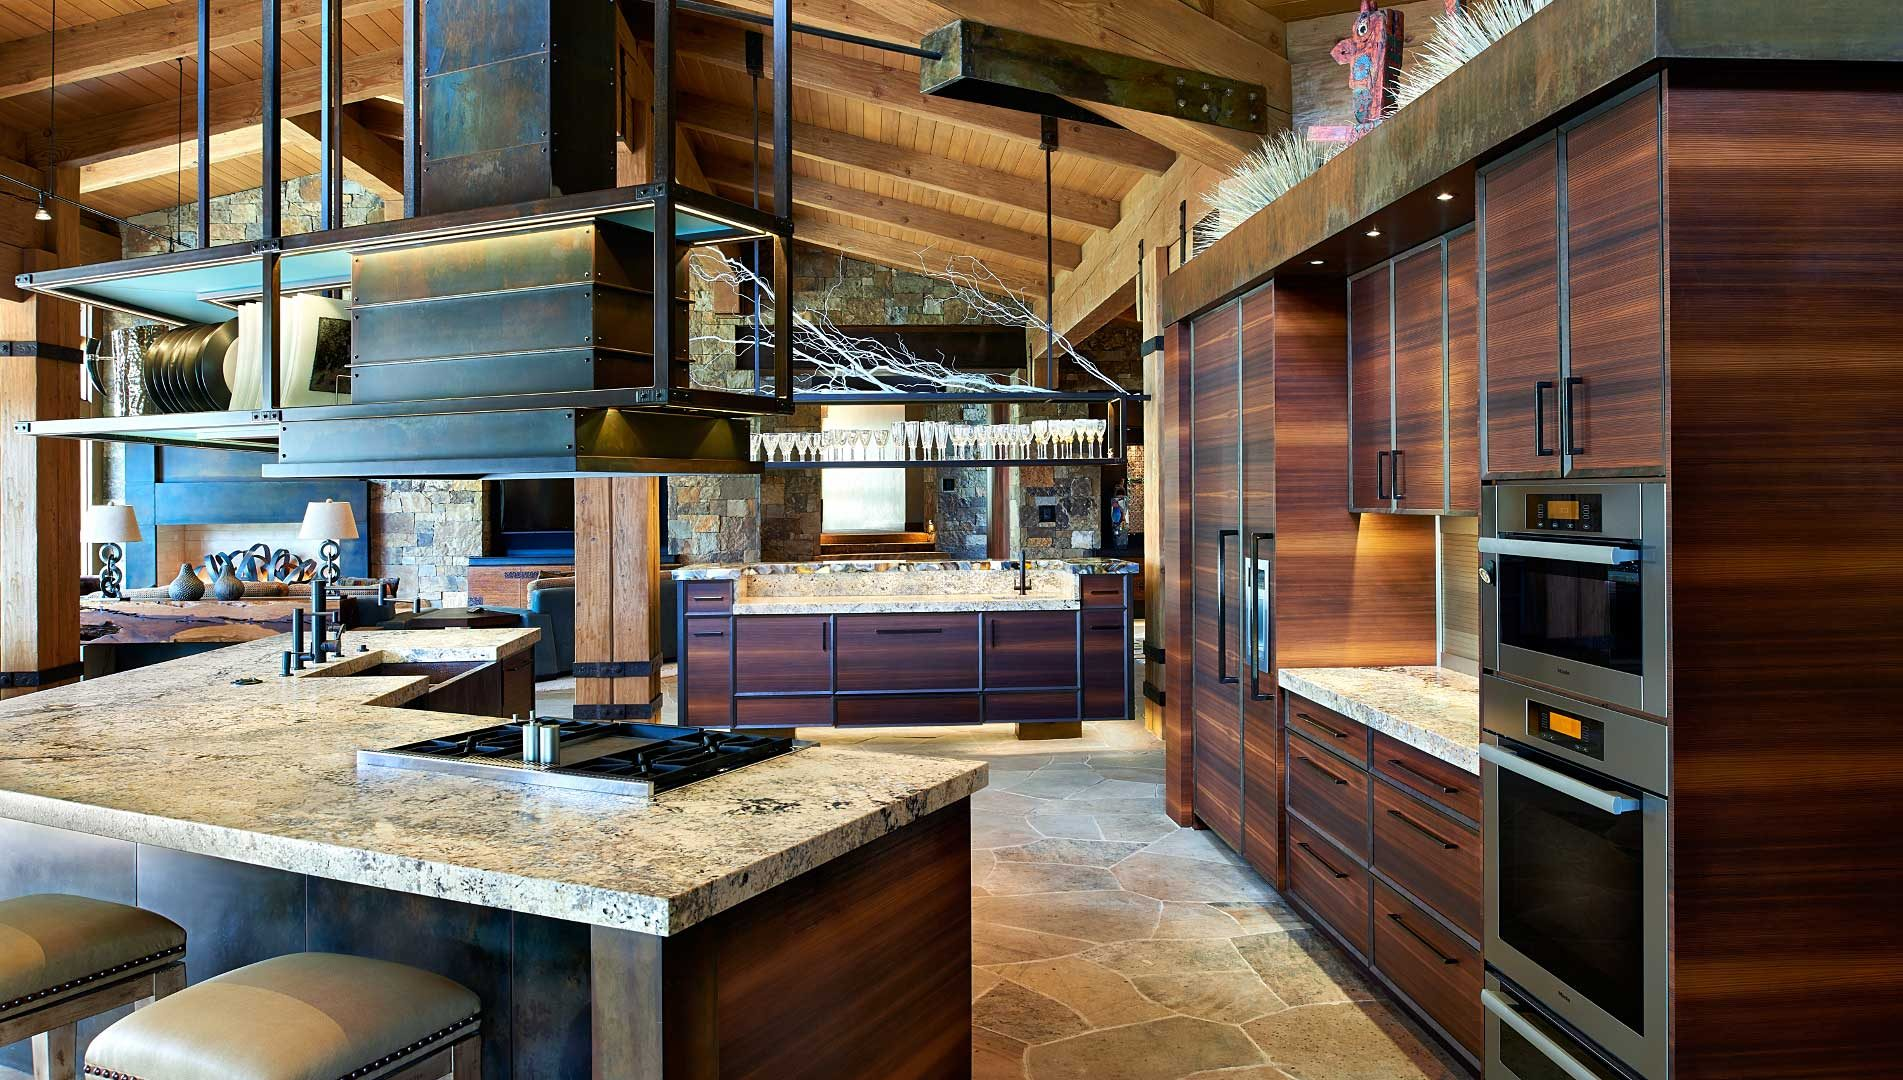 luxury real estate colorado: dream kitchens | janet gilliland